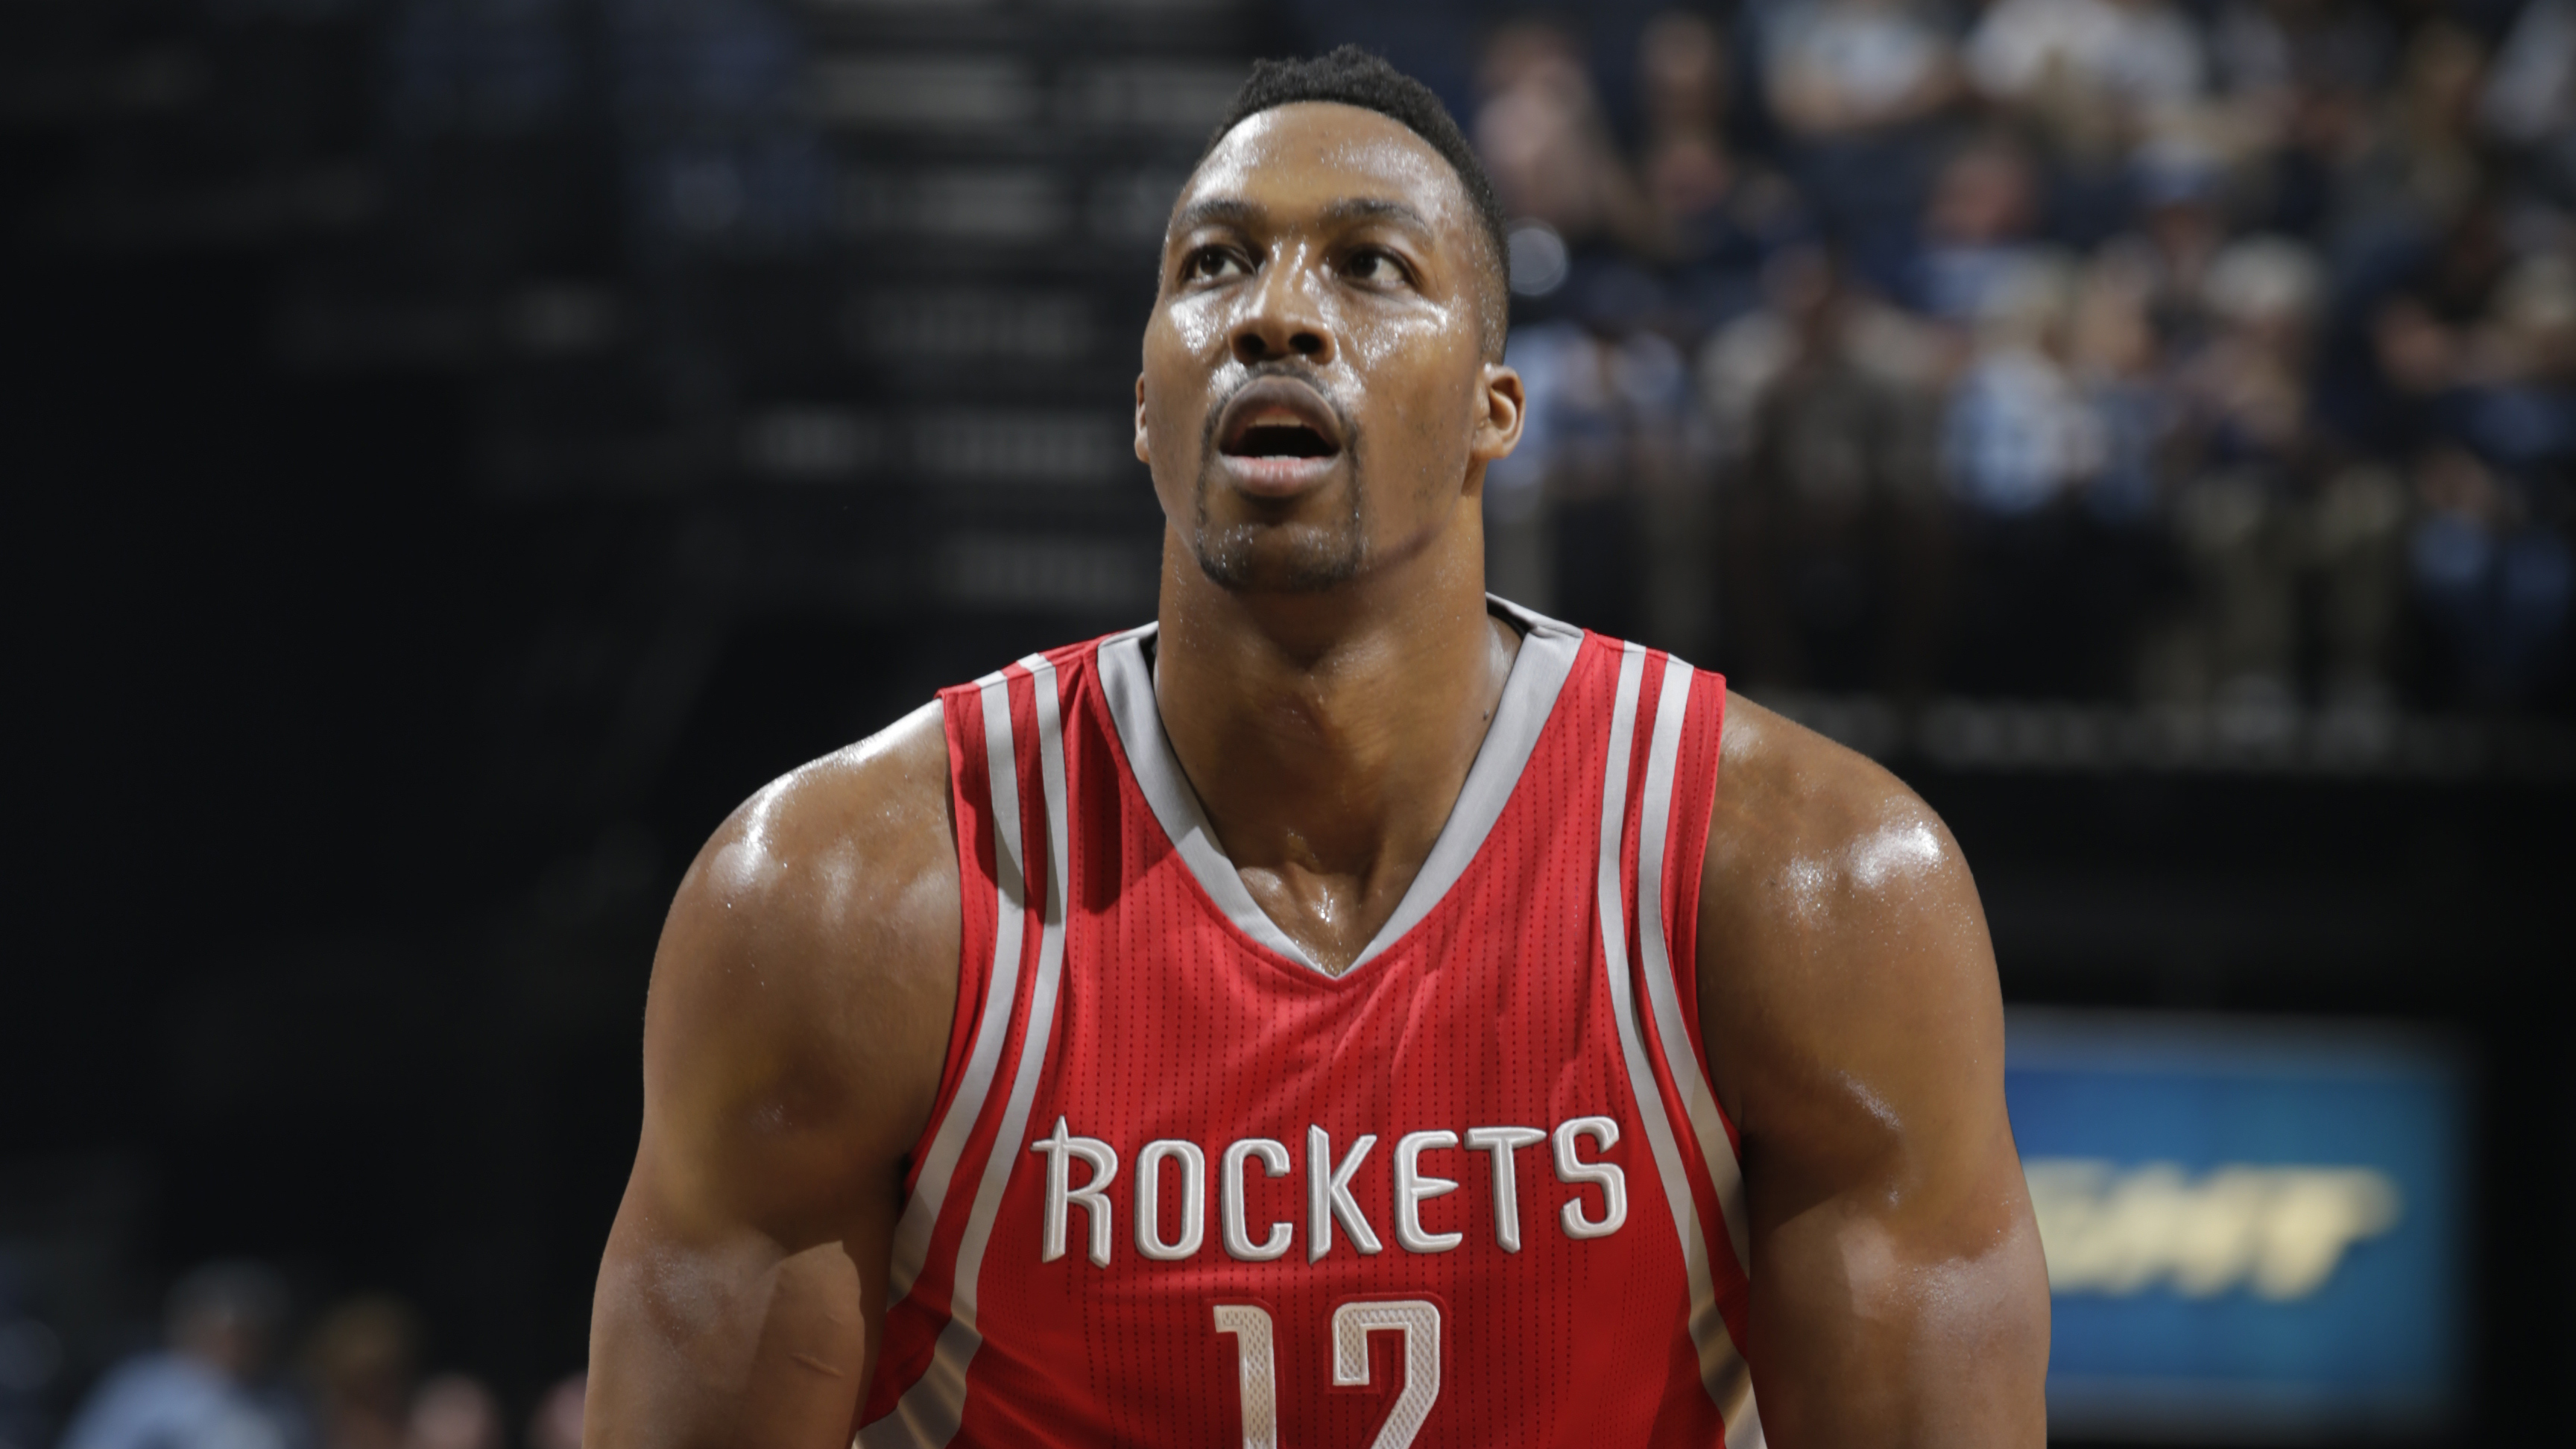 Dwight Howard: Houston Rockets: Dwight Howard Played With Torn MCL And